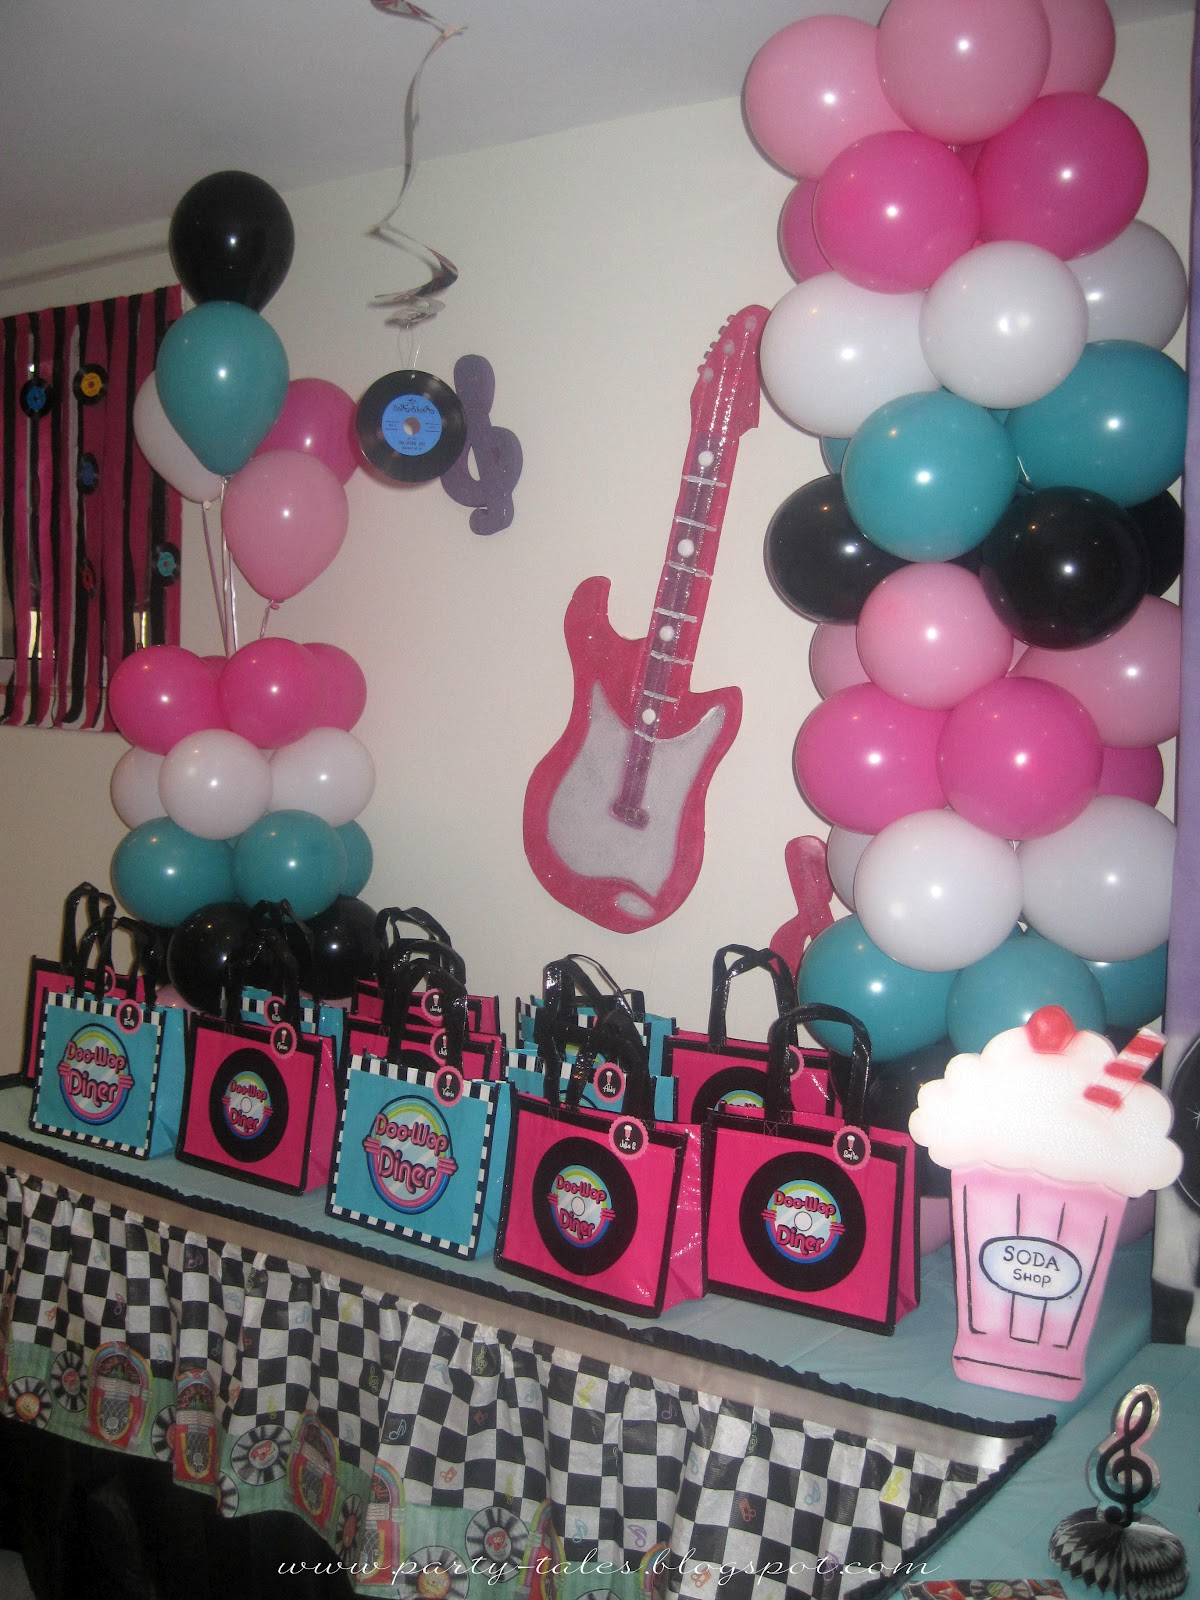 Party tales birthday party 50 39 s diner sock hop party for 60s decoration ideas party